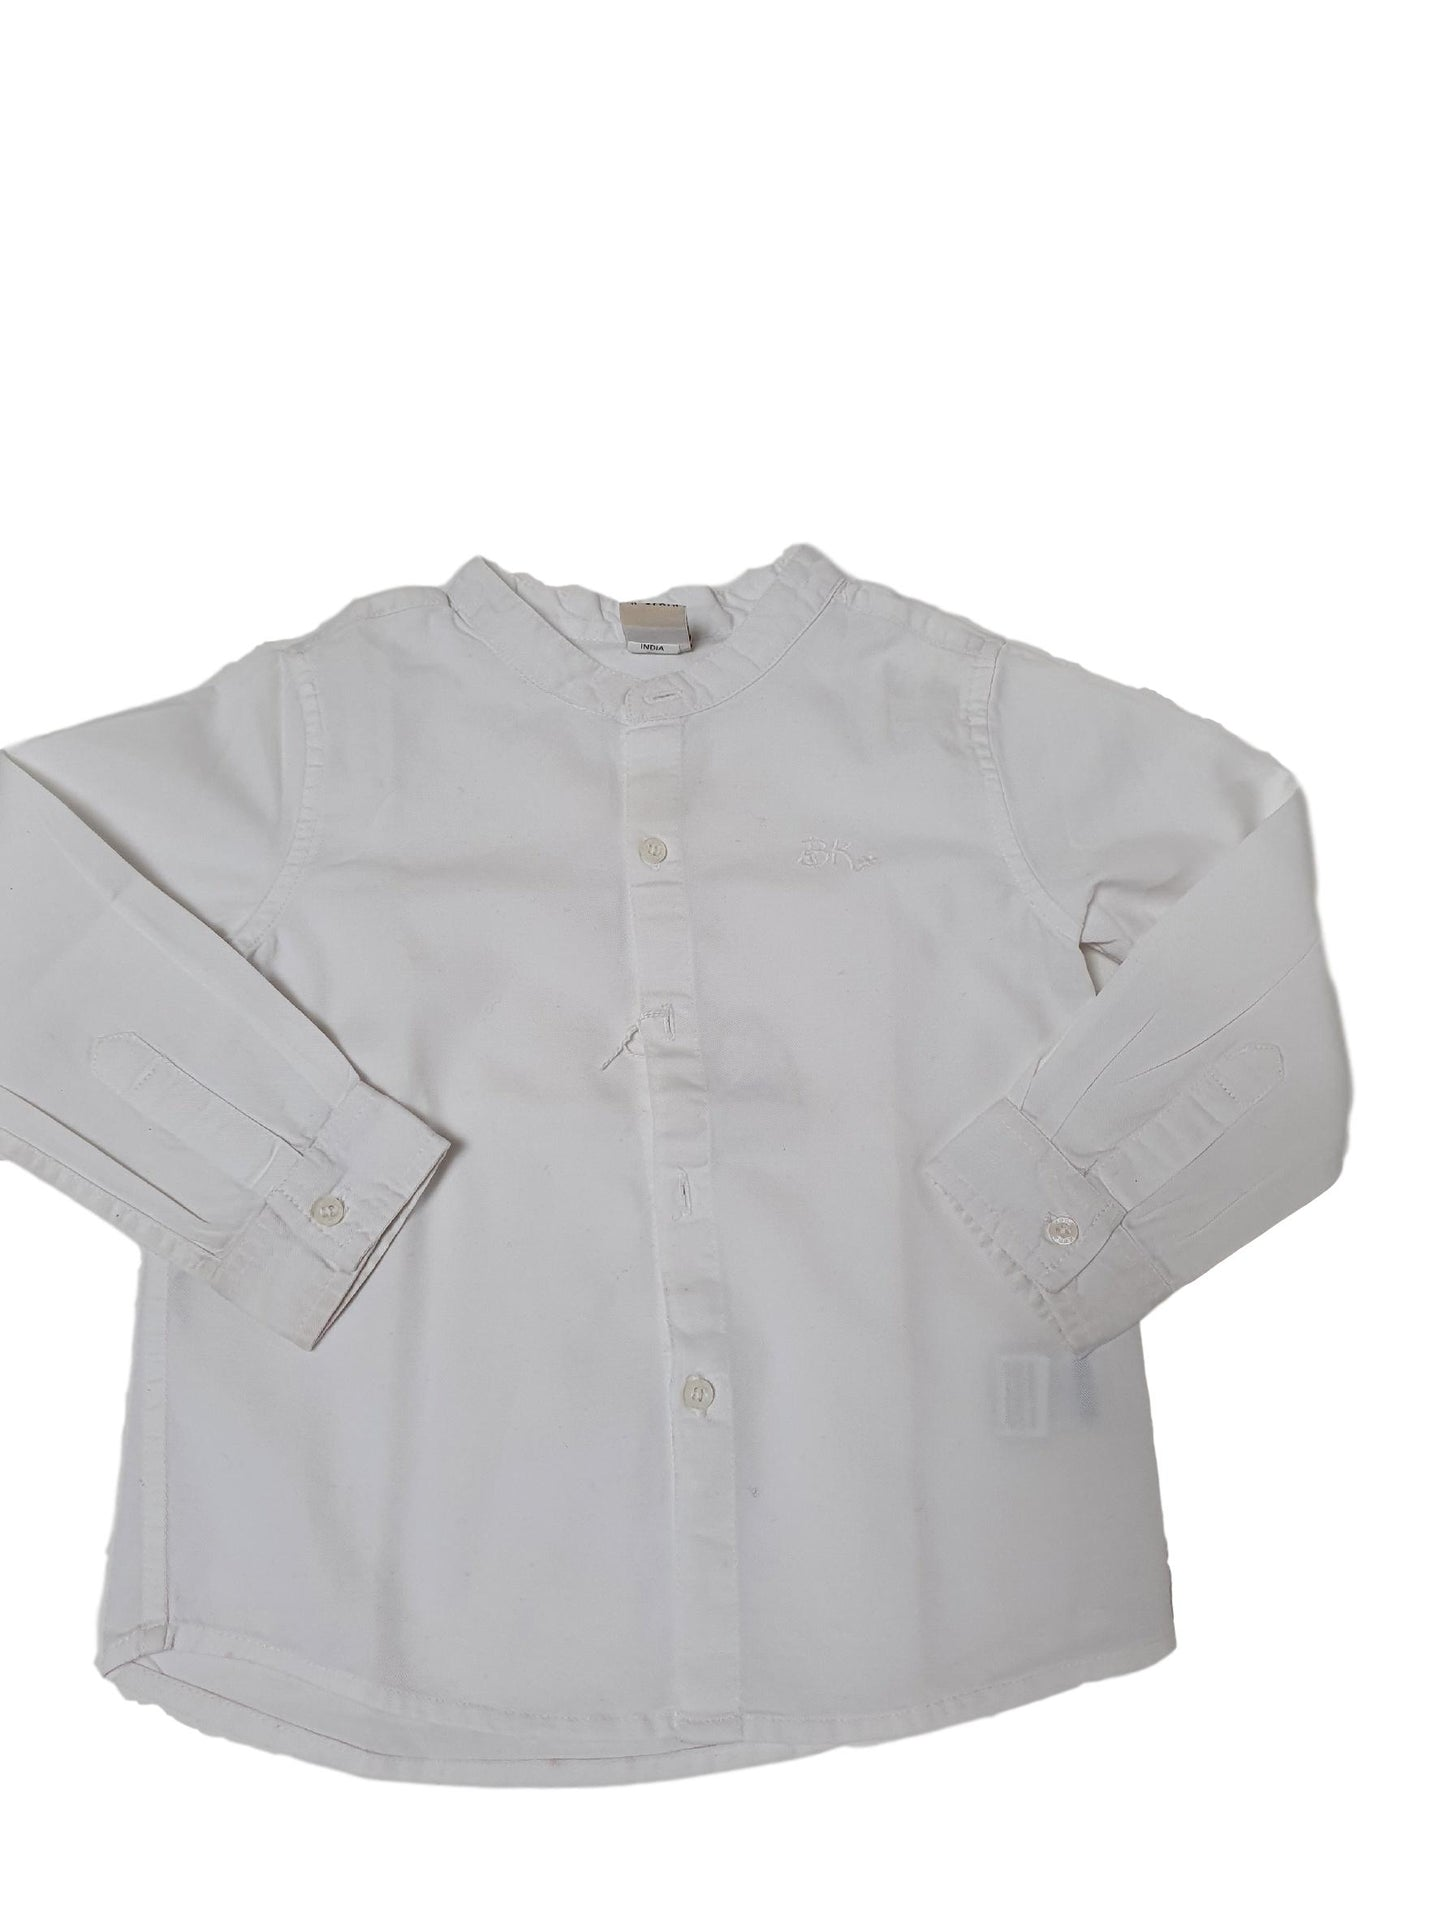 BASSIK boy shirt 2/3 yo